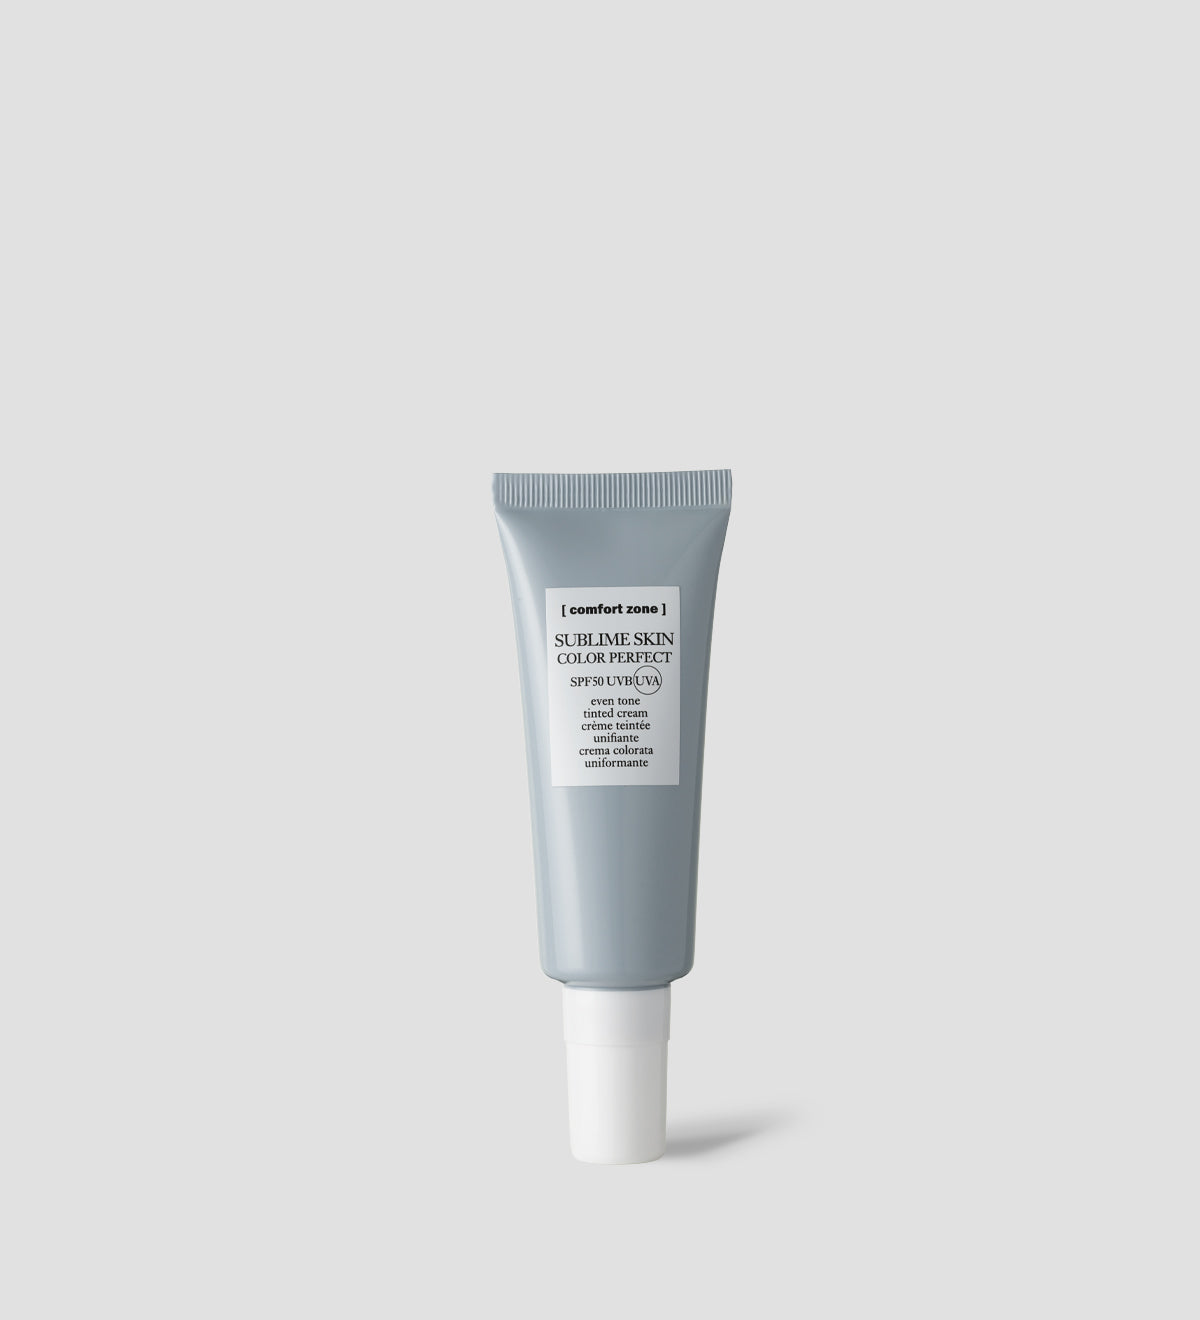 Comfort Zone: SUBLIME SKIN COLOR PERFECT SPF50 Even tone tinted cream-1